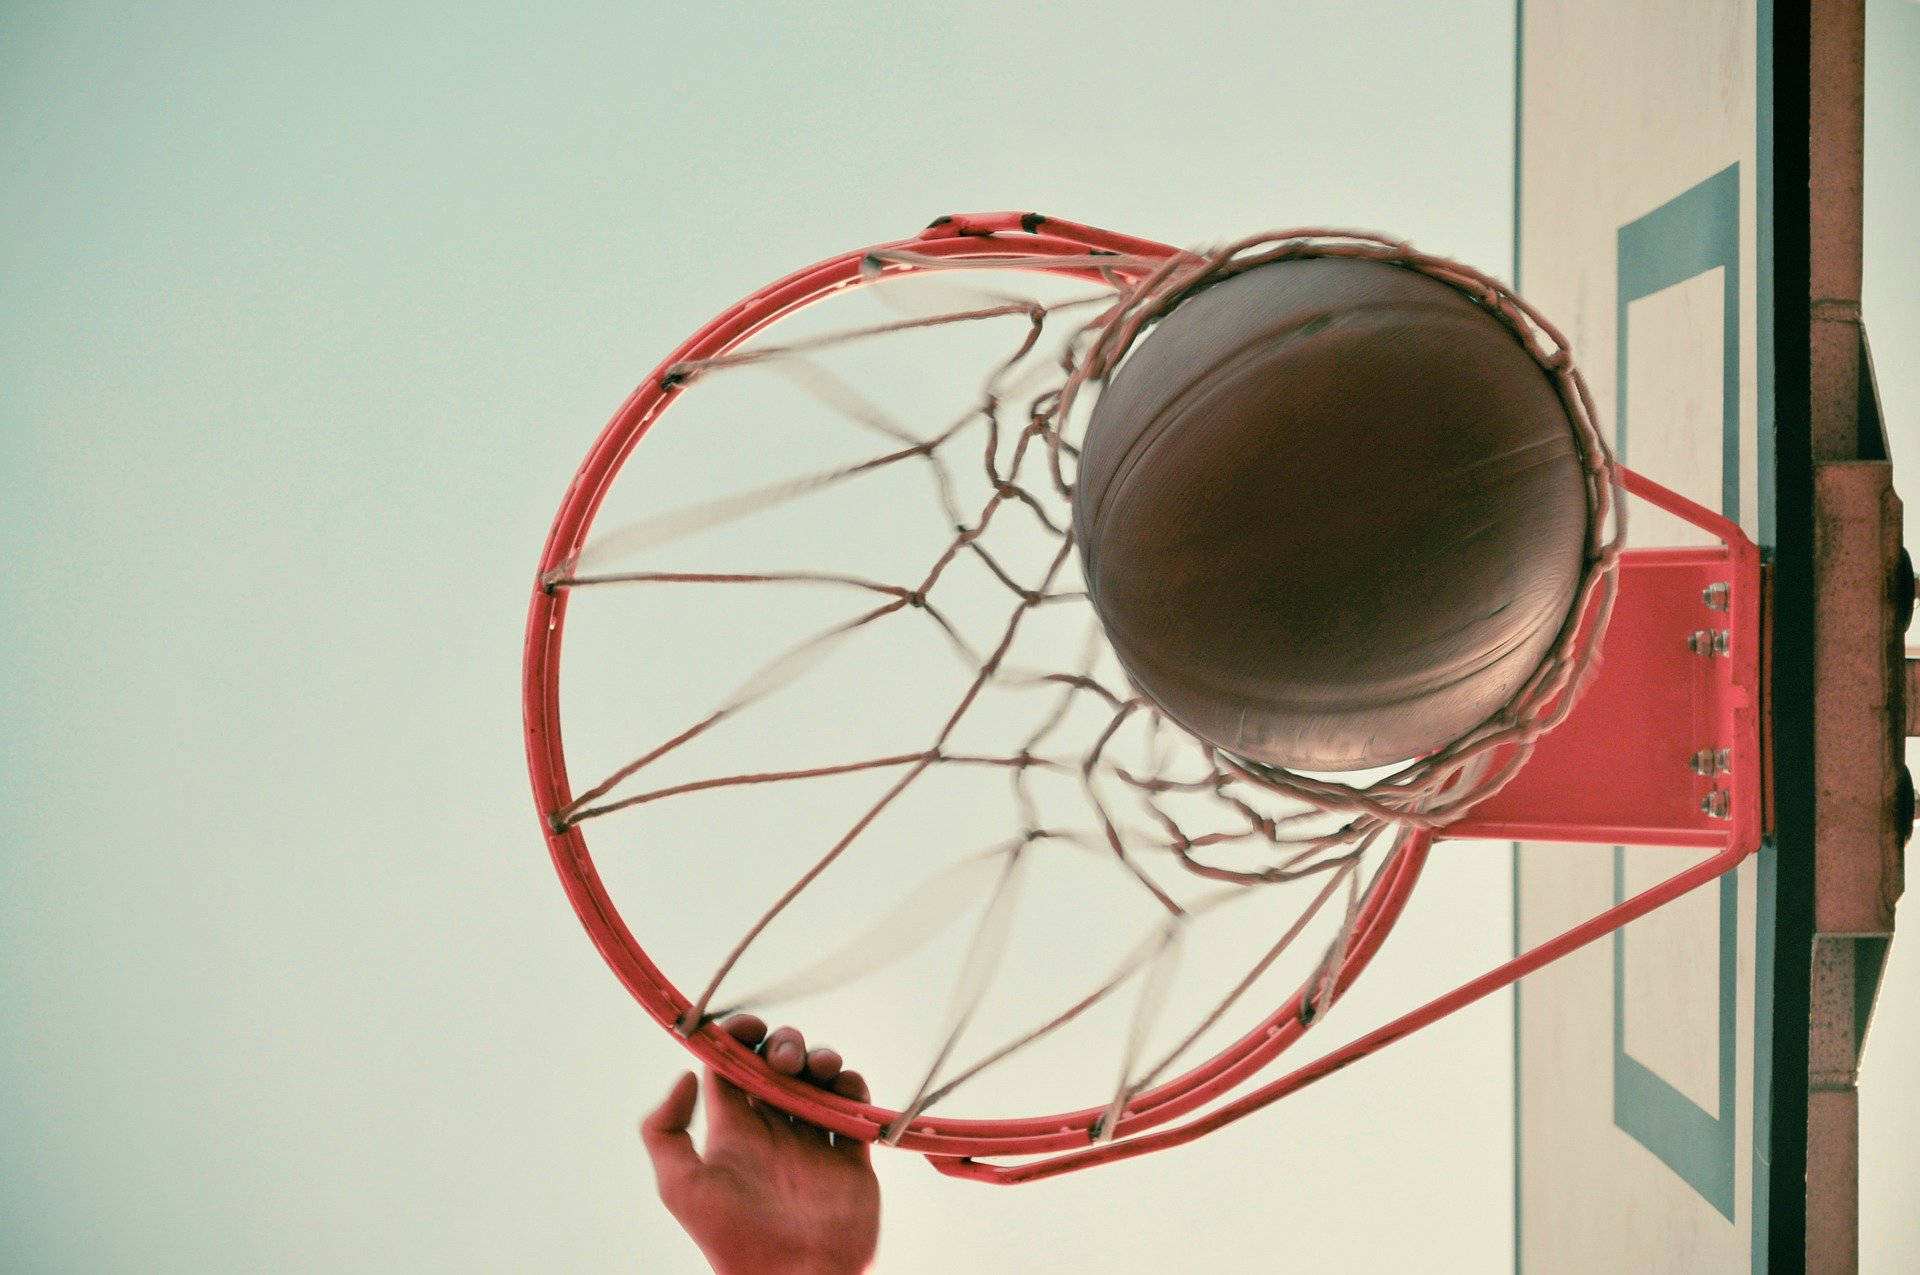 TWU men's and women's basketball teams will each host an intrasquad skills competition on Thursday, Feb. 4, 2021 at the Langley Events Centre as part of the Shoot for the Cure campaign against breast cancer (Pixabay.com)